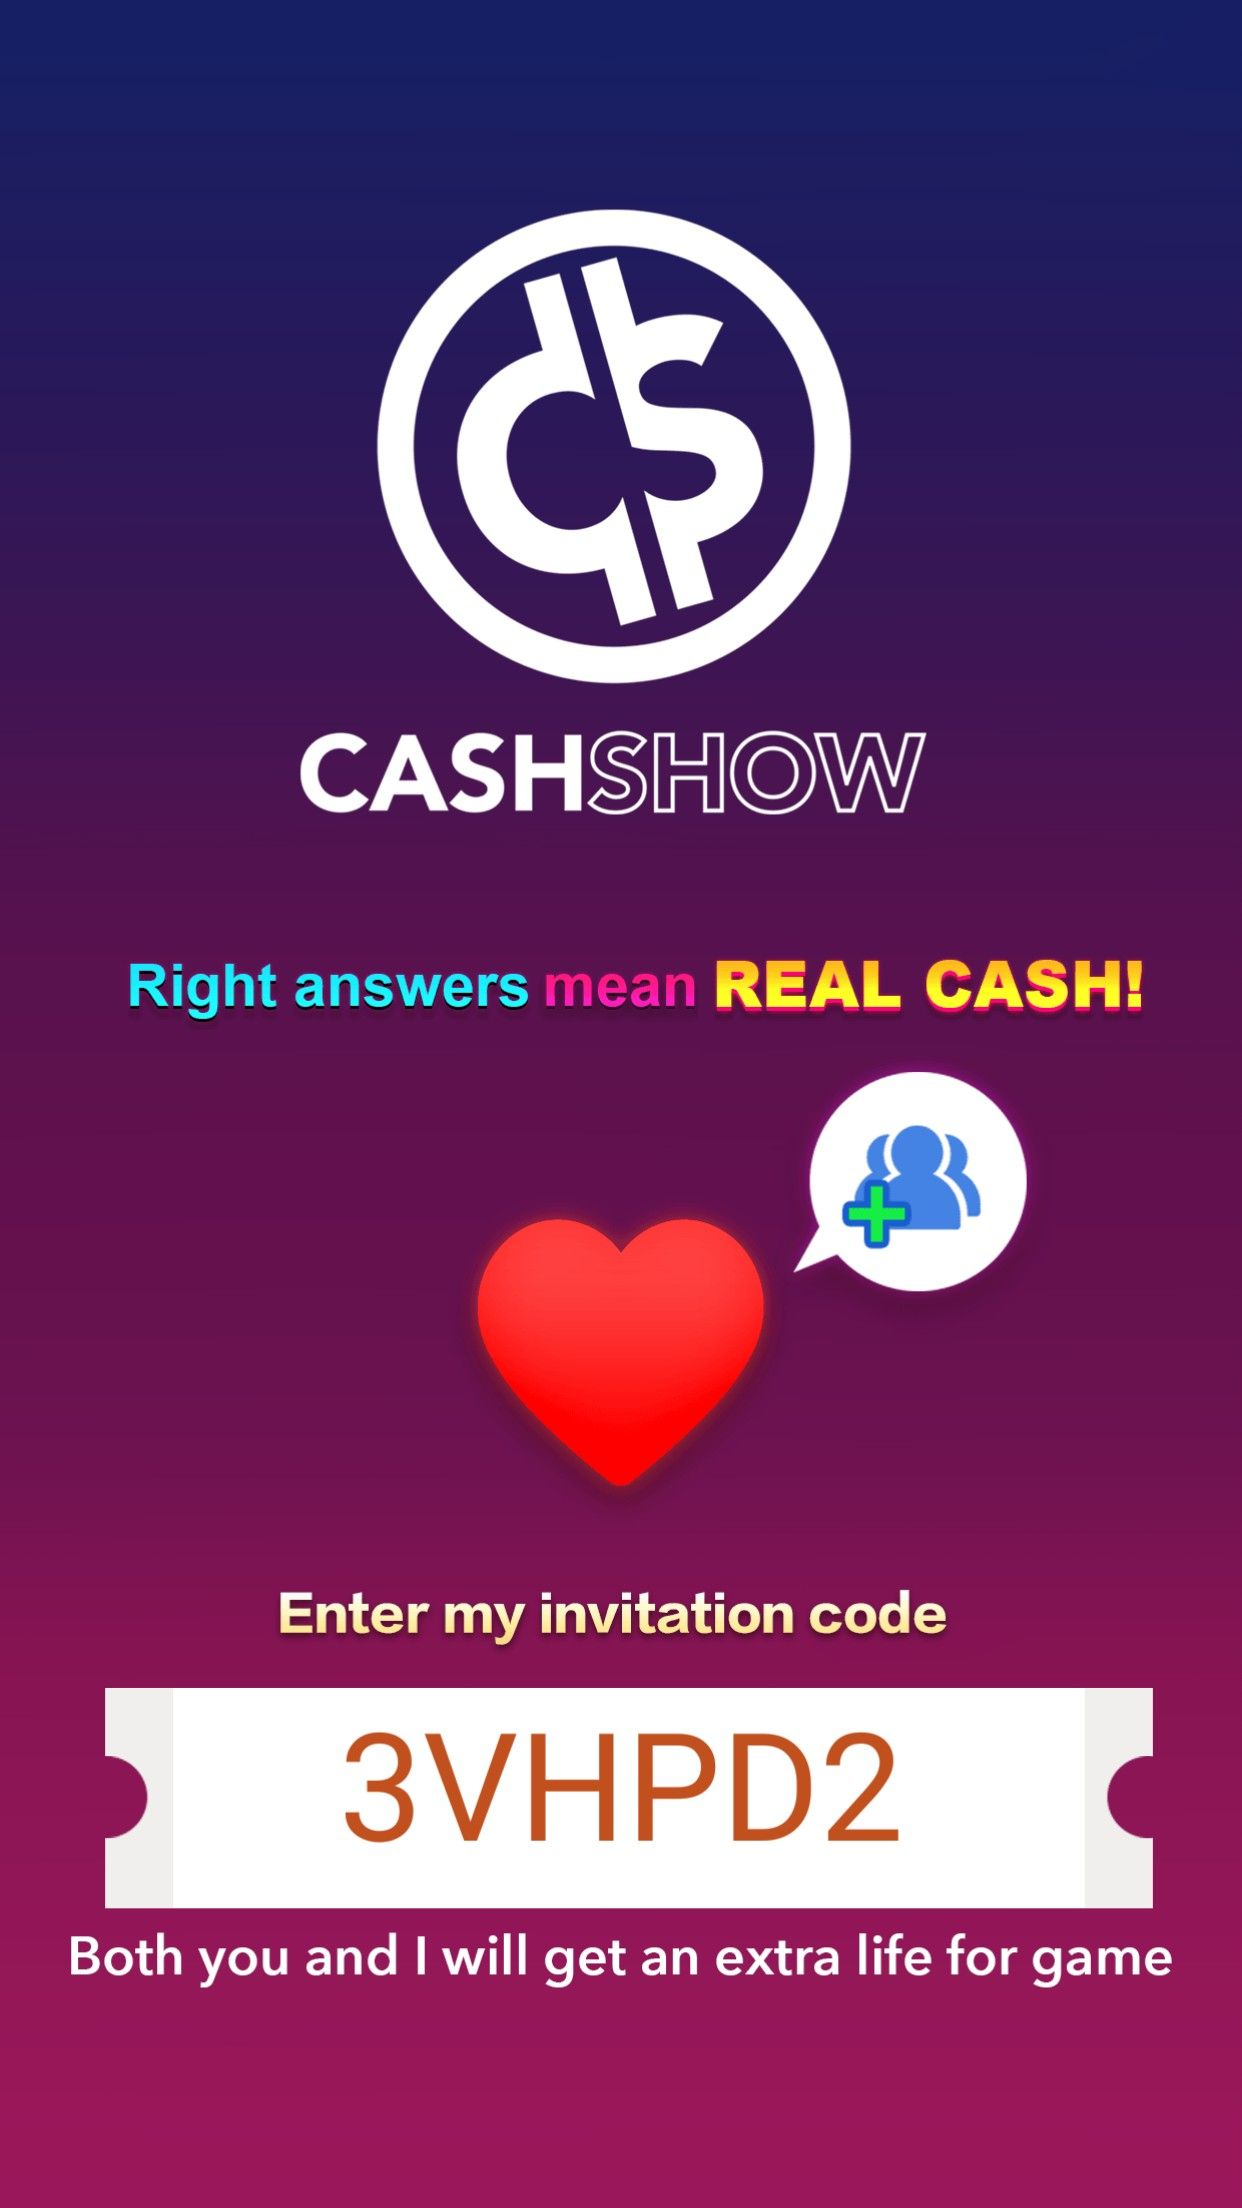 Make real cash! Free trivia app, fun and addictive. Just